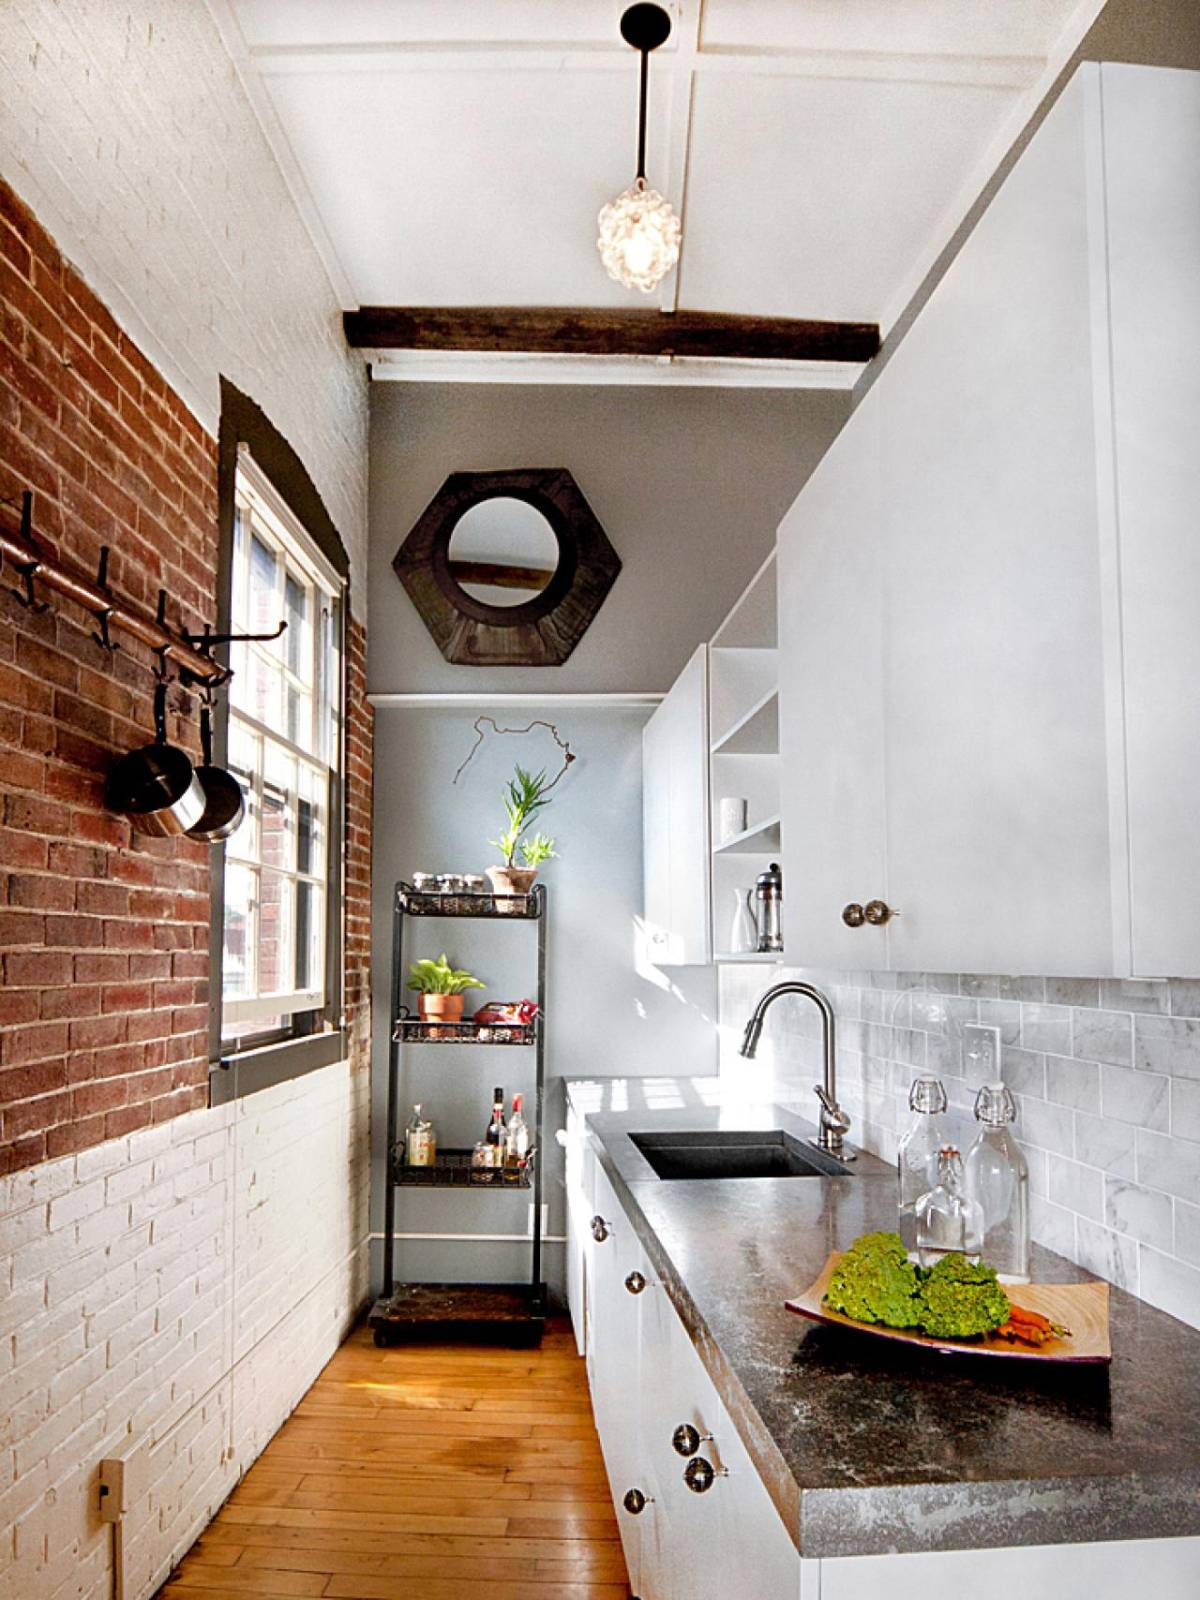 Great design of modern and small loft kitchen with bricks wall and galley style layout